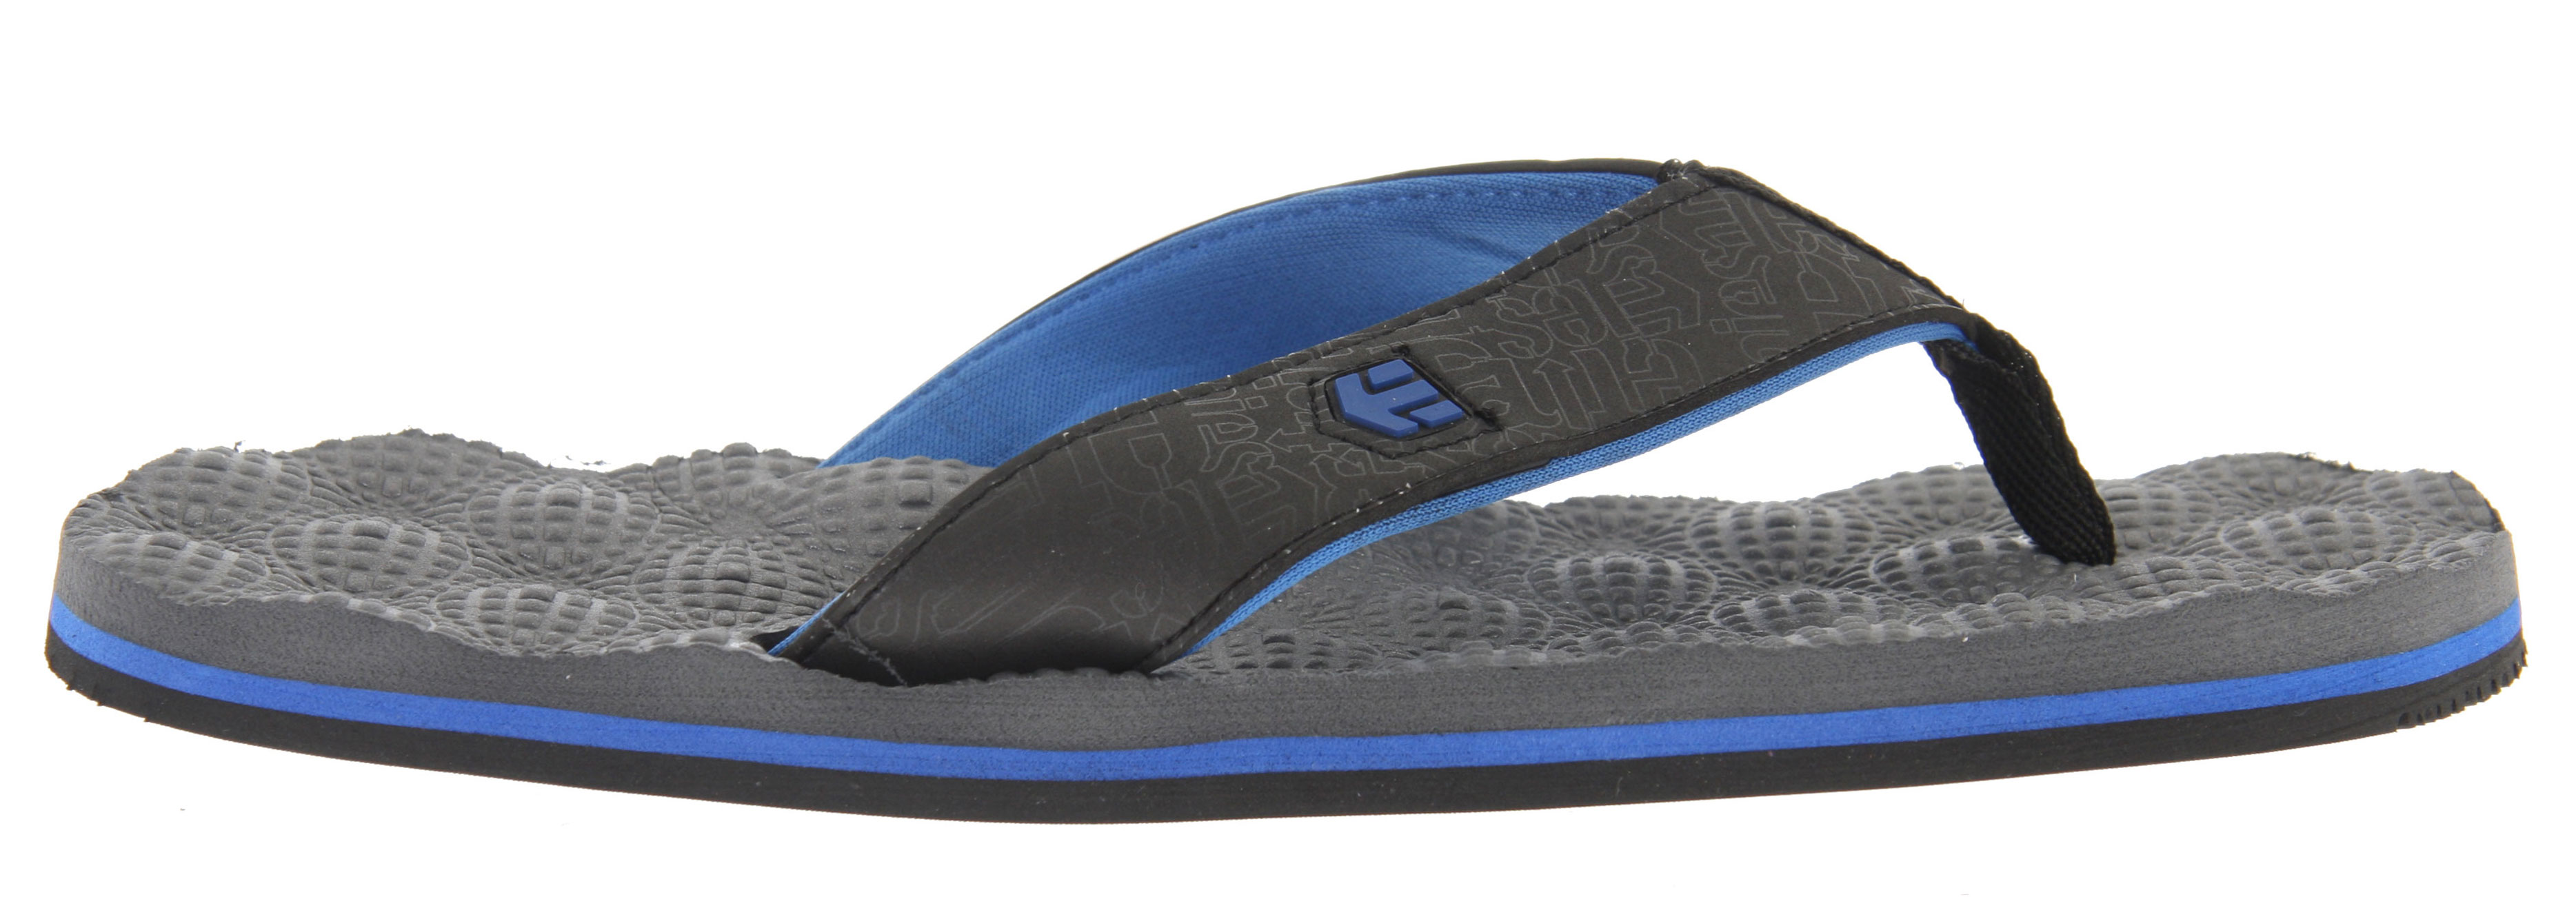 Skateboard Key Features of the Etnies Foam Ball Sandals: Designed by Jamie O'Brien Super soft molded EVA footbed Eco-friendly neoprene lining Rubber outsole - $15.95